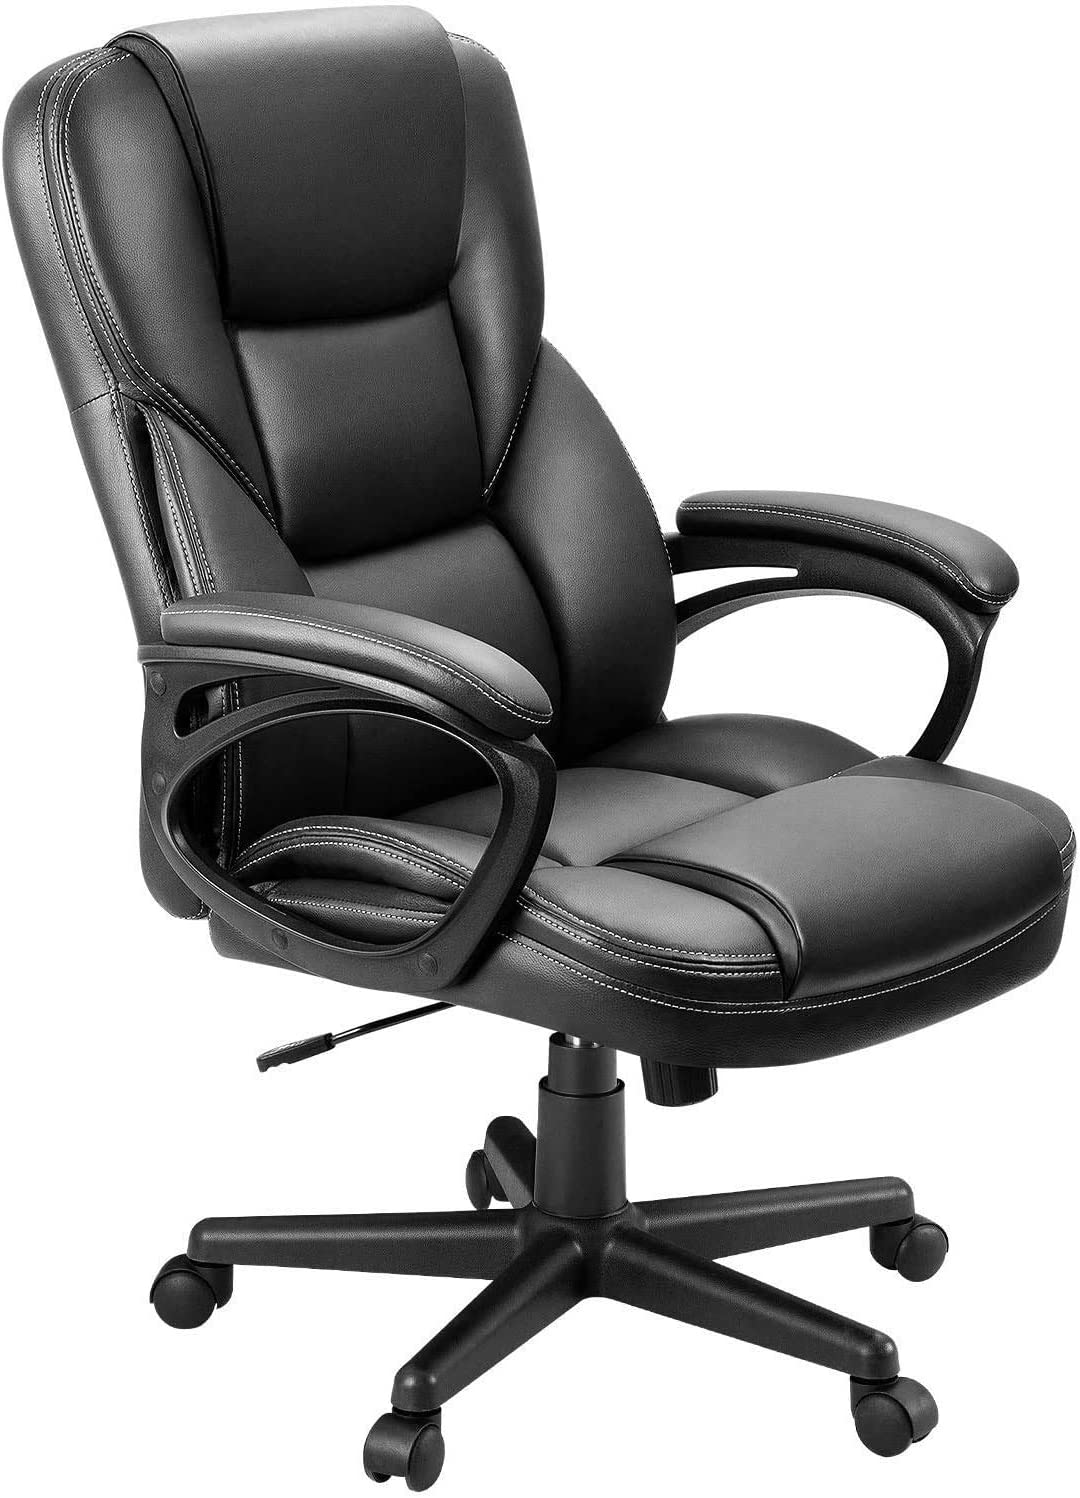 Big and Tall Office Home Desk Chair